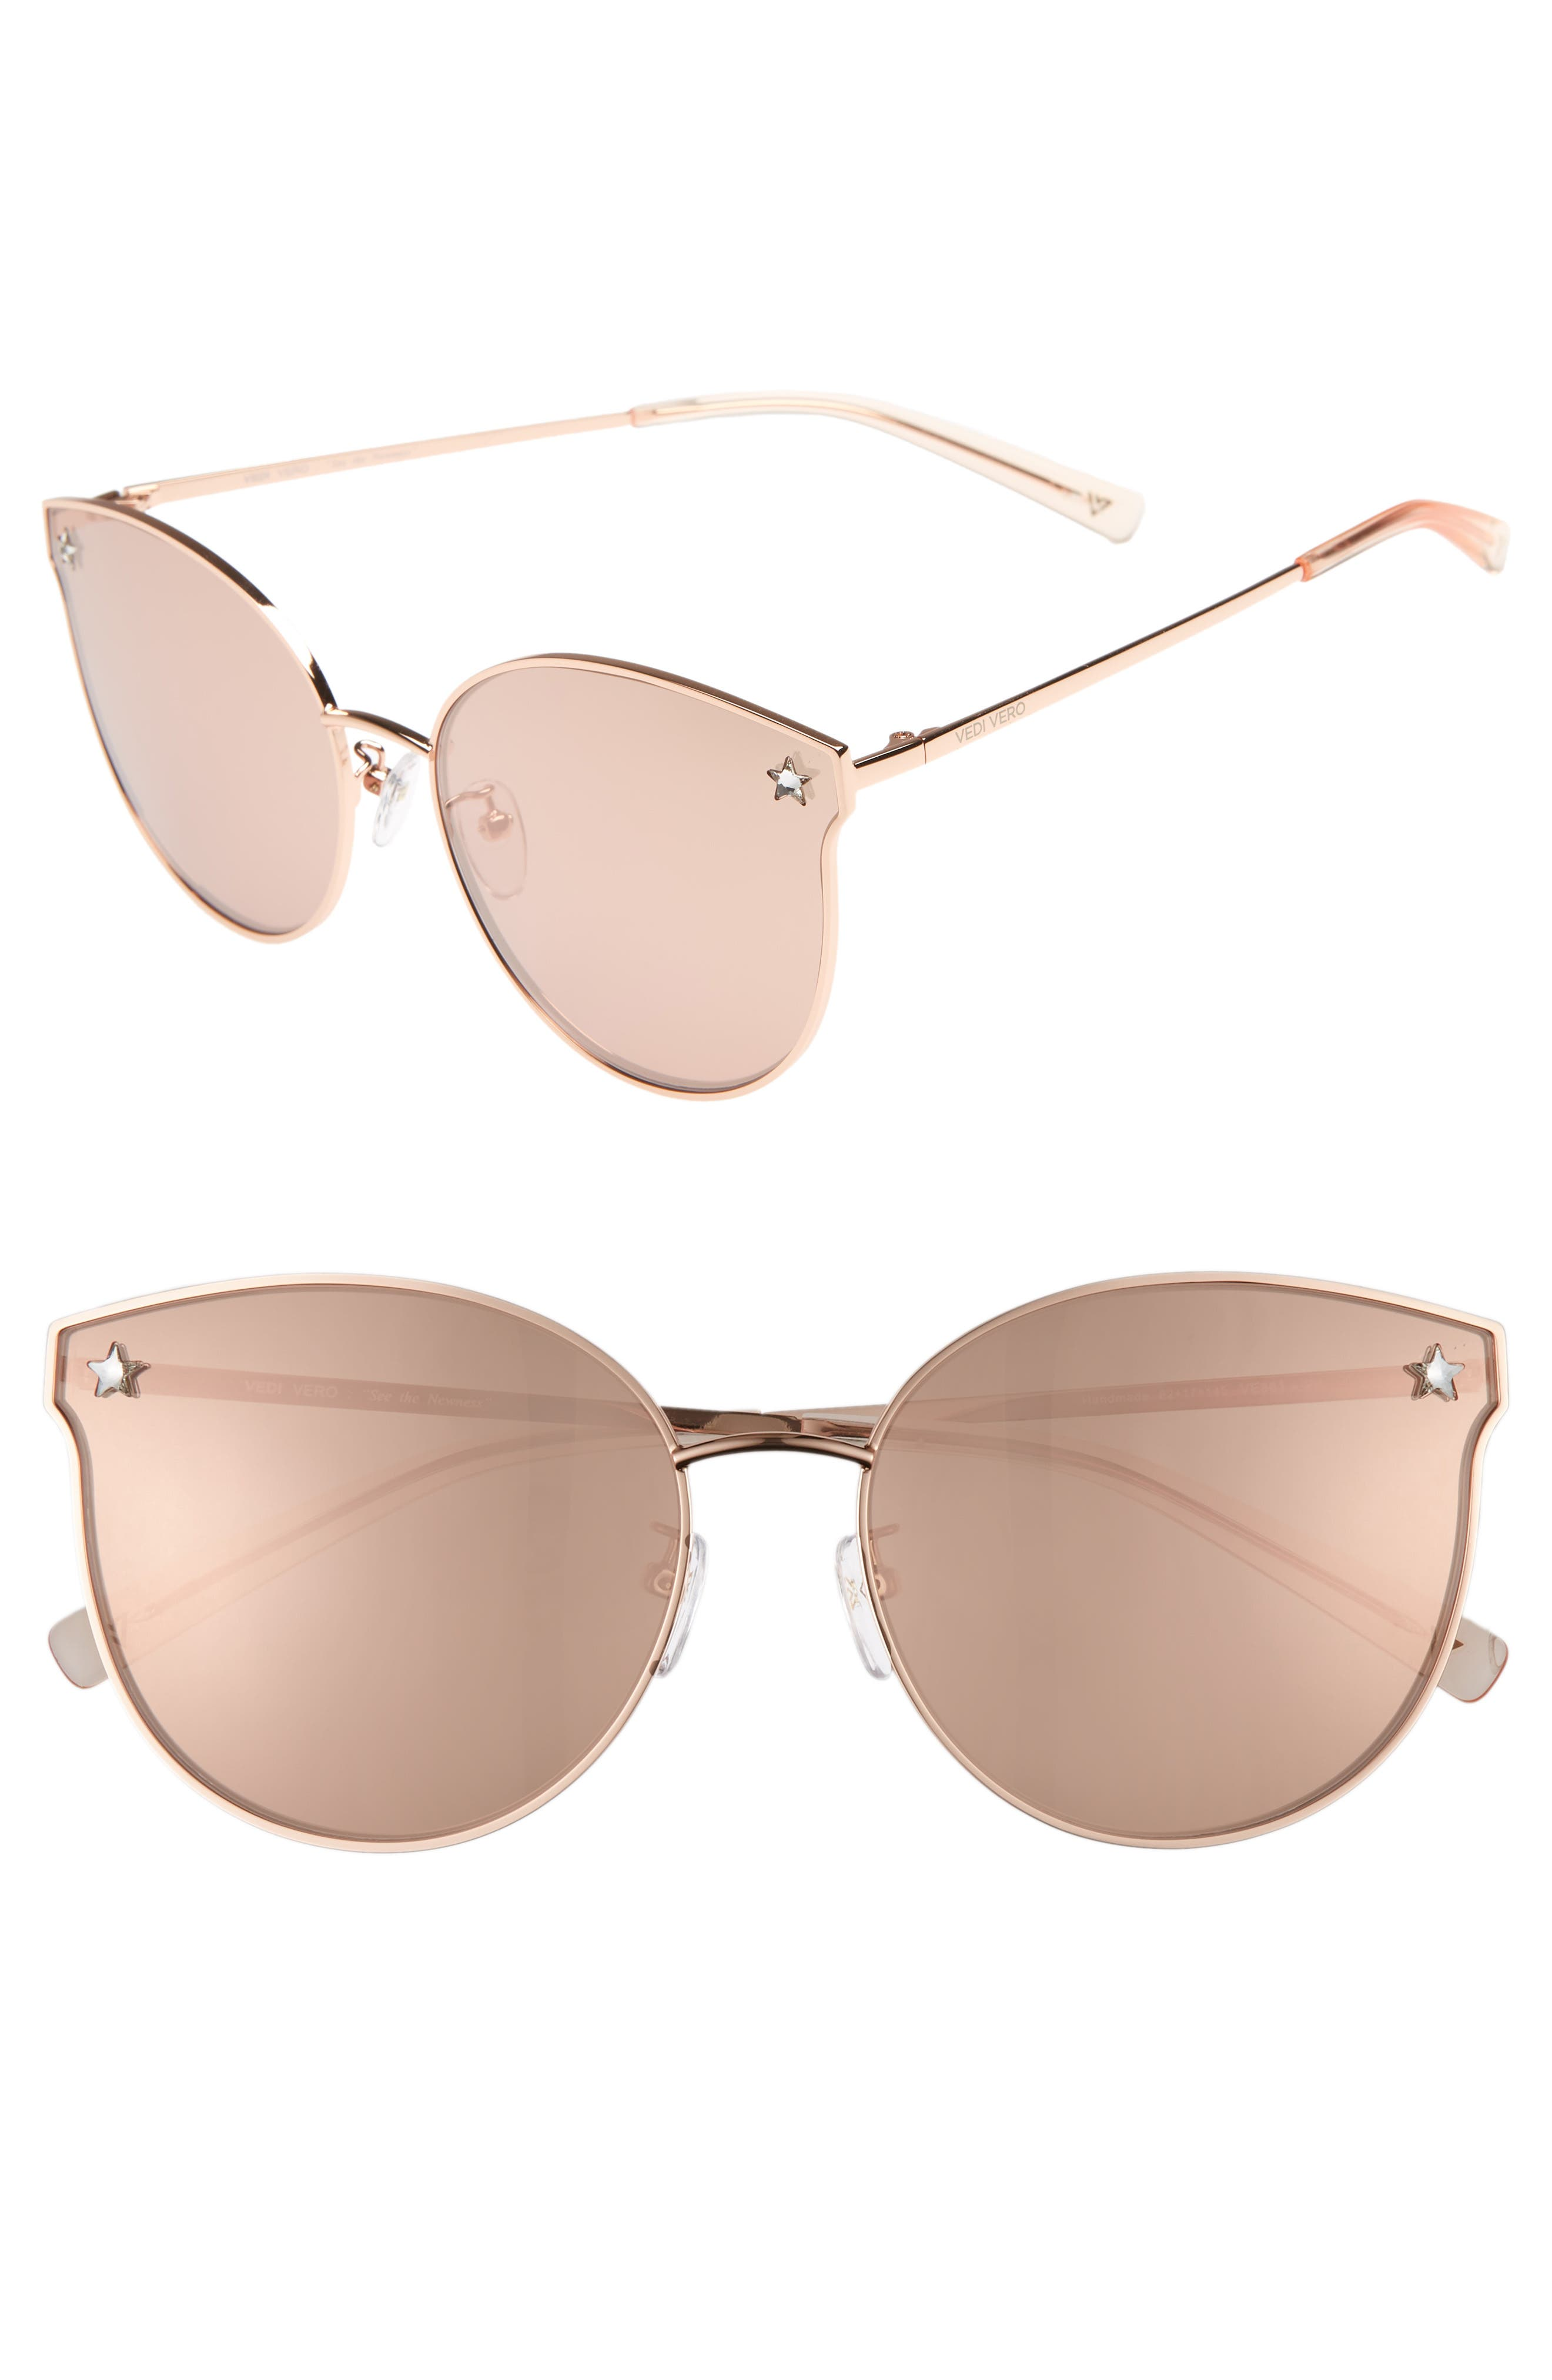 VEDI VERO 62Mm Oversize Round Cat Eye Sunglasses - Shiny Rose Gold